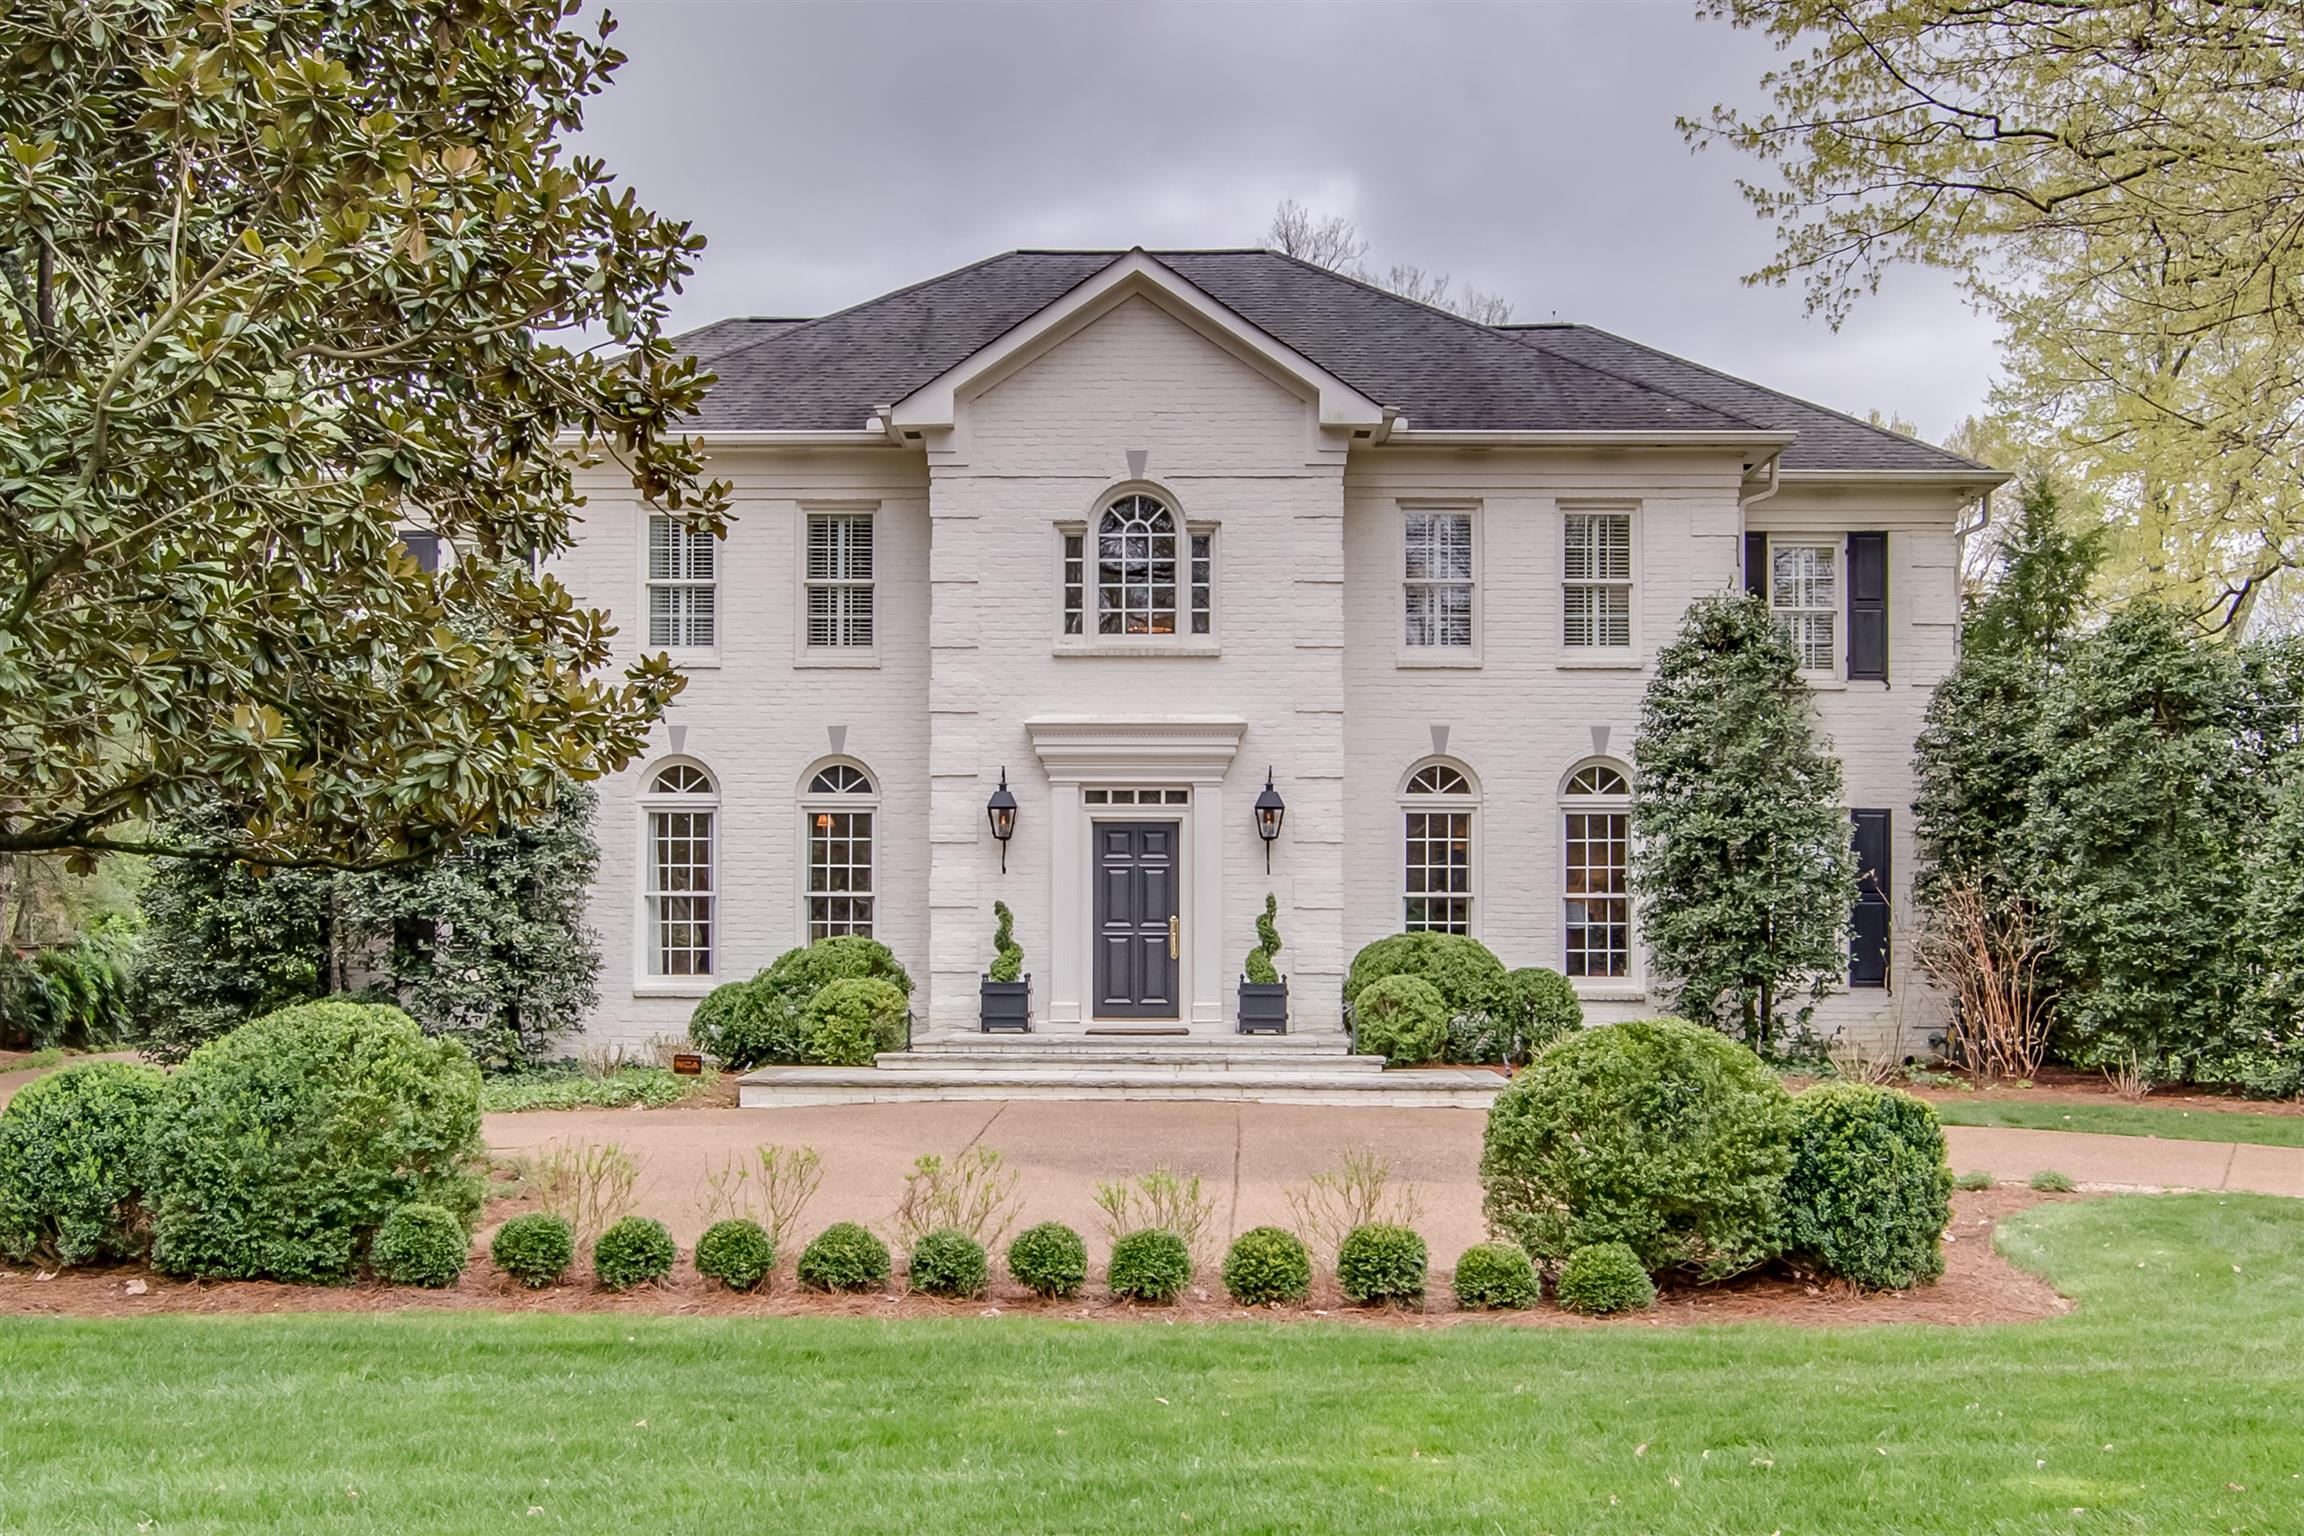 407 W Brookfield Ave, Belle Meade, Tennessee 5 Bedroom as one of Homes & Land Real Estate